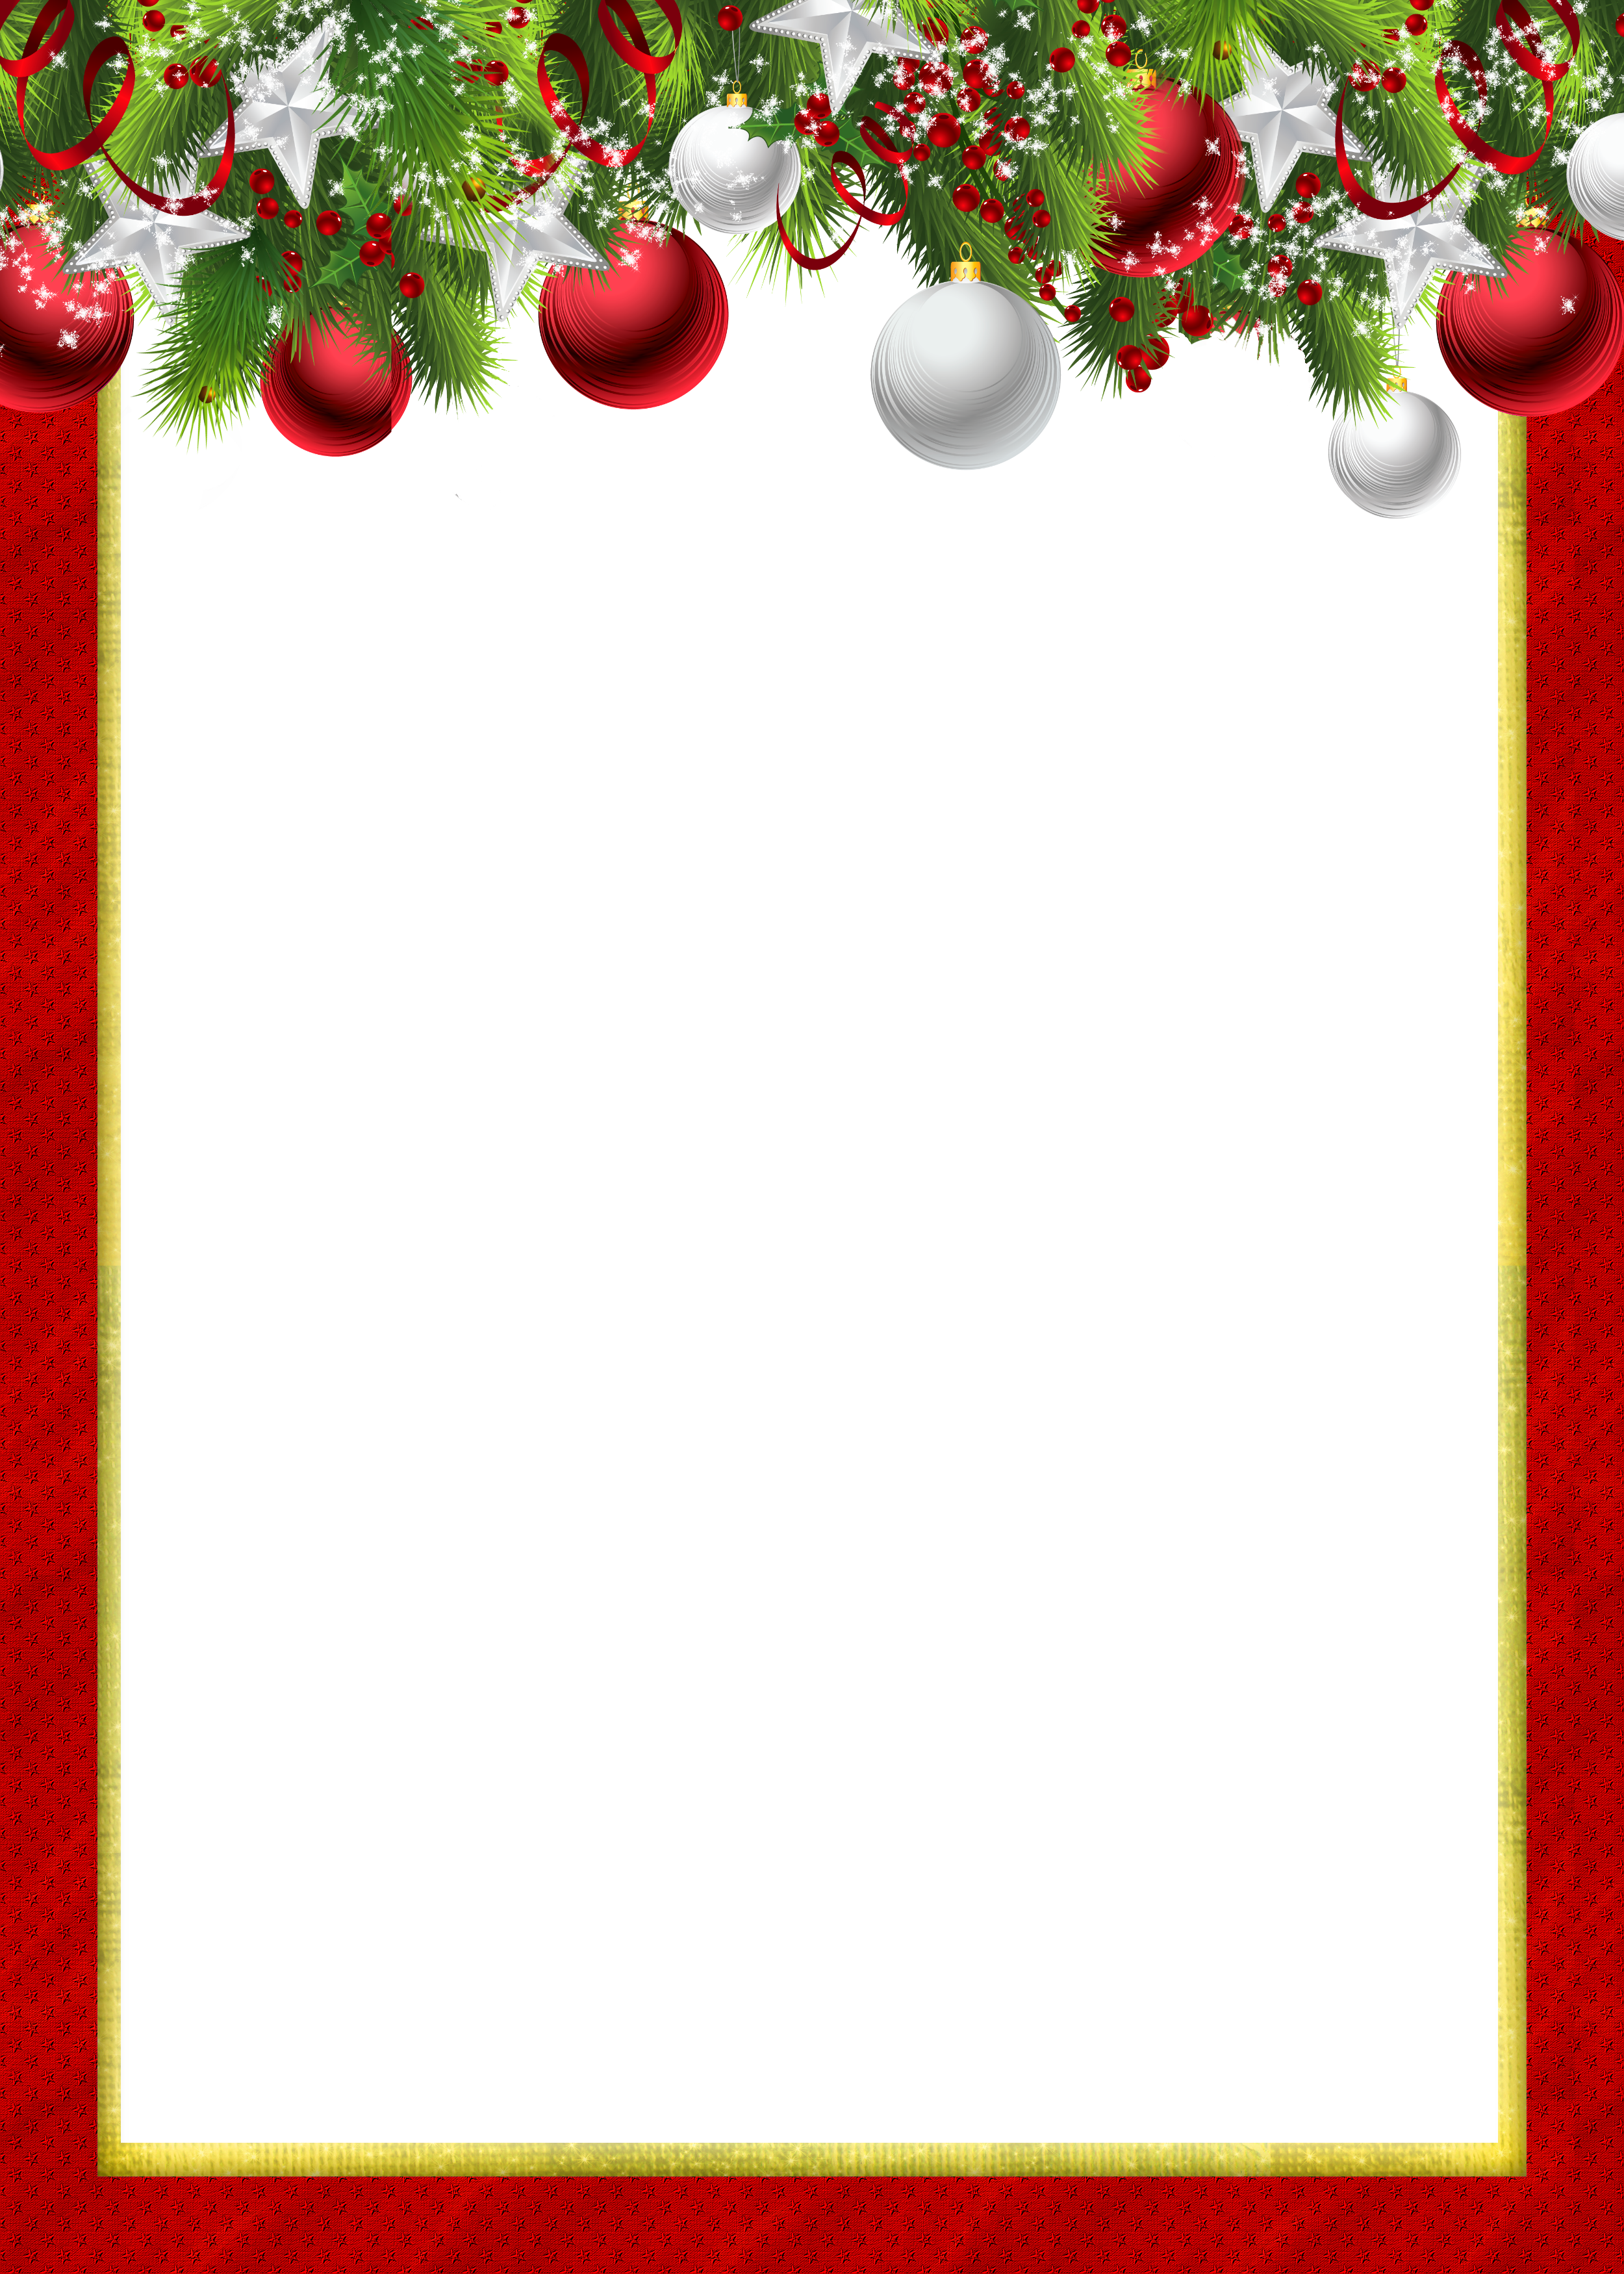 Red Transparent Png Christmas Photo Frame With Christmas Balls Free Christmas Borders Christmas Clipart Free Christmas Border